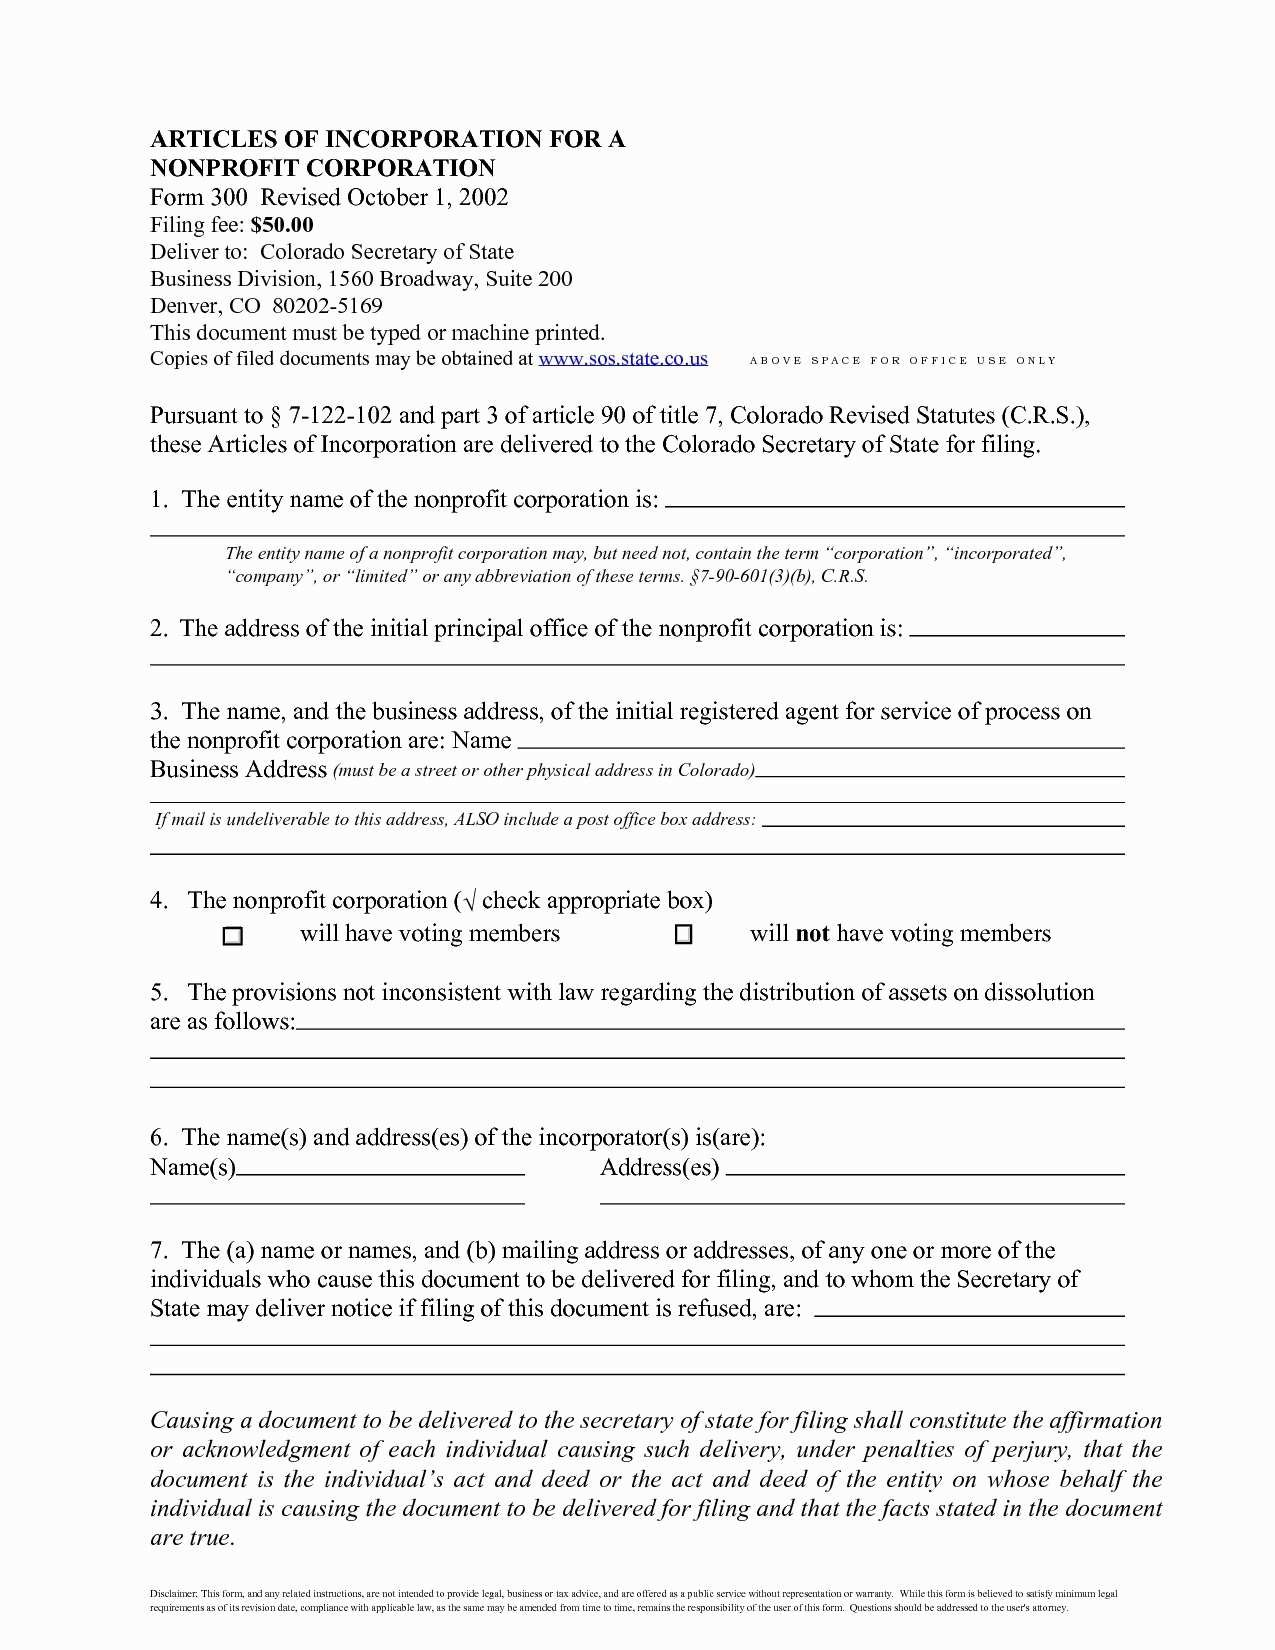 Cost Sharing Agreement Example  Template Bylaws For A Nonprofit Within Excluded Licence Lodger Agreement Template